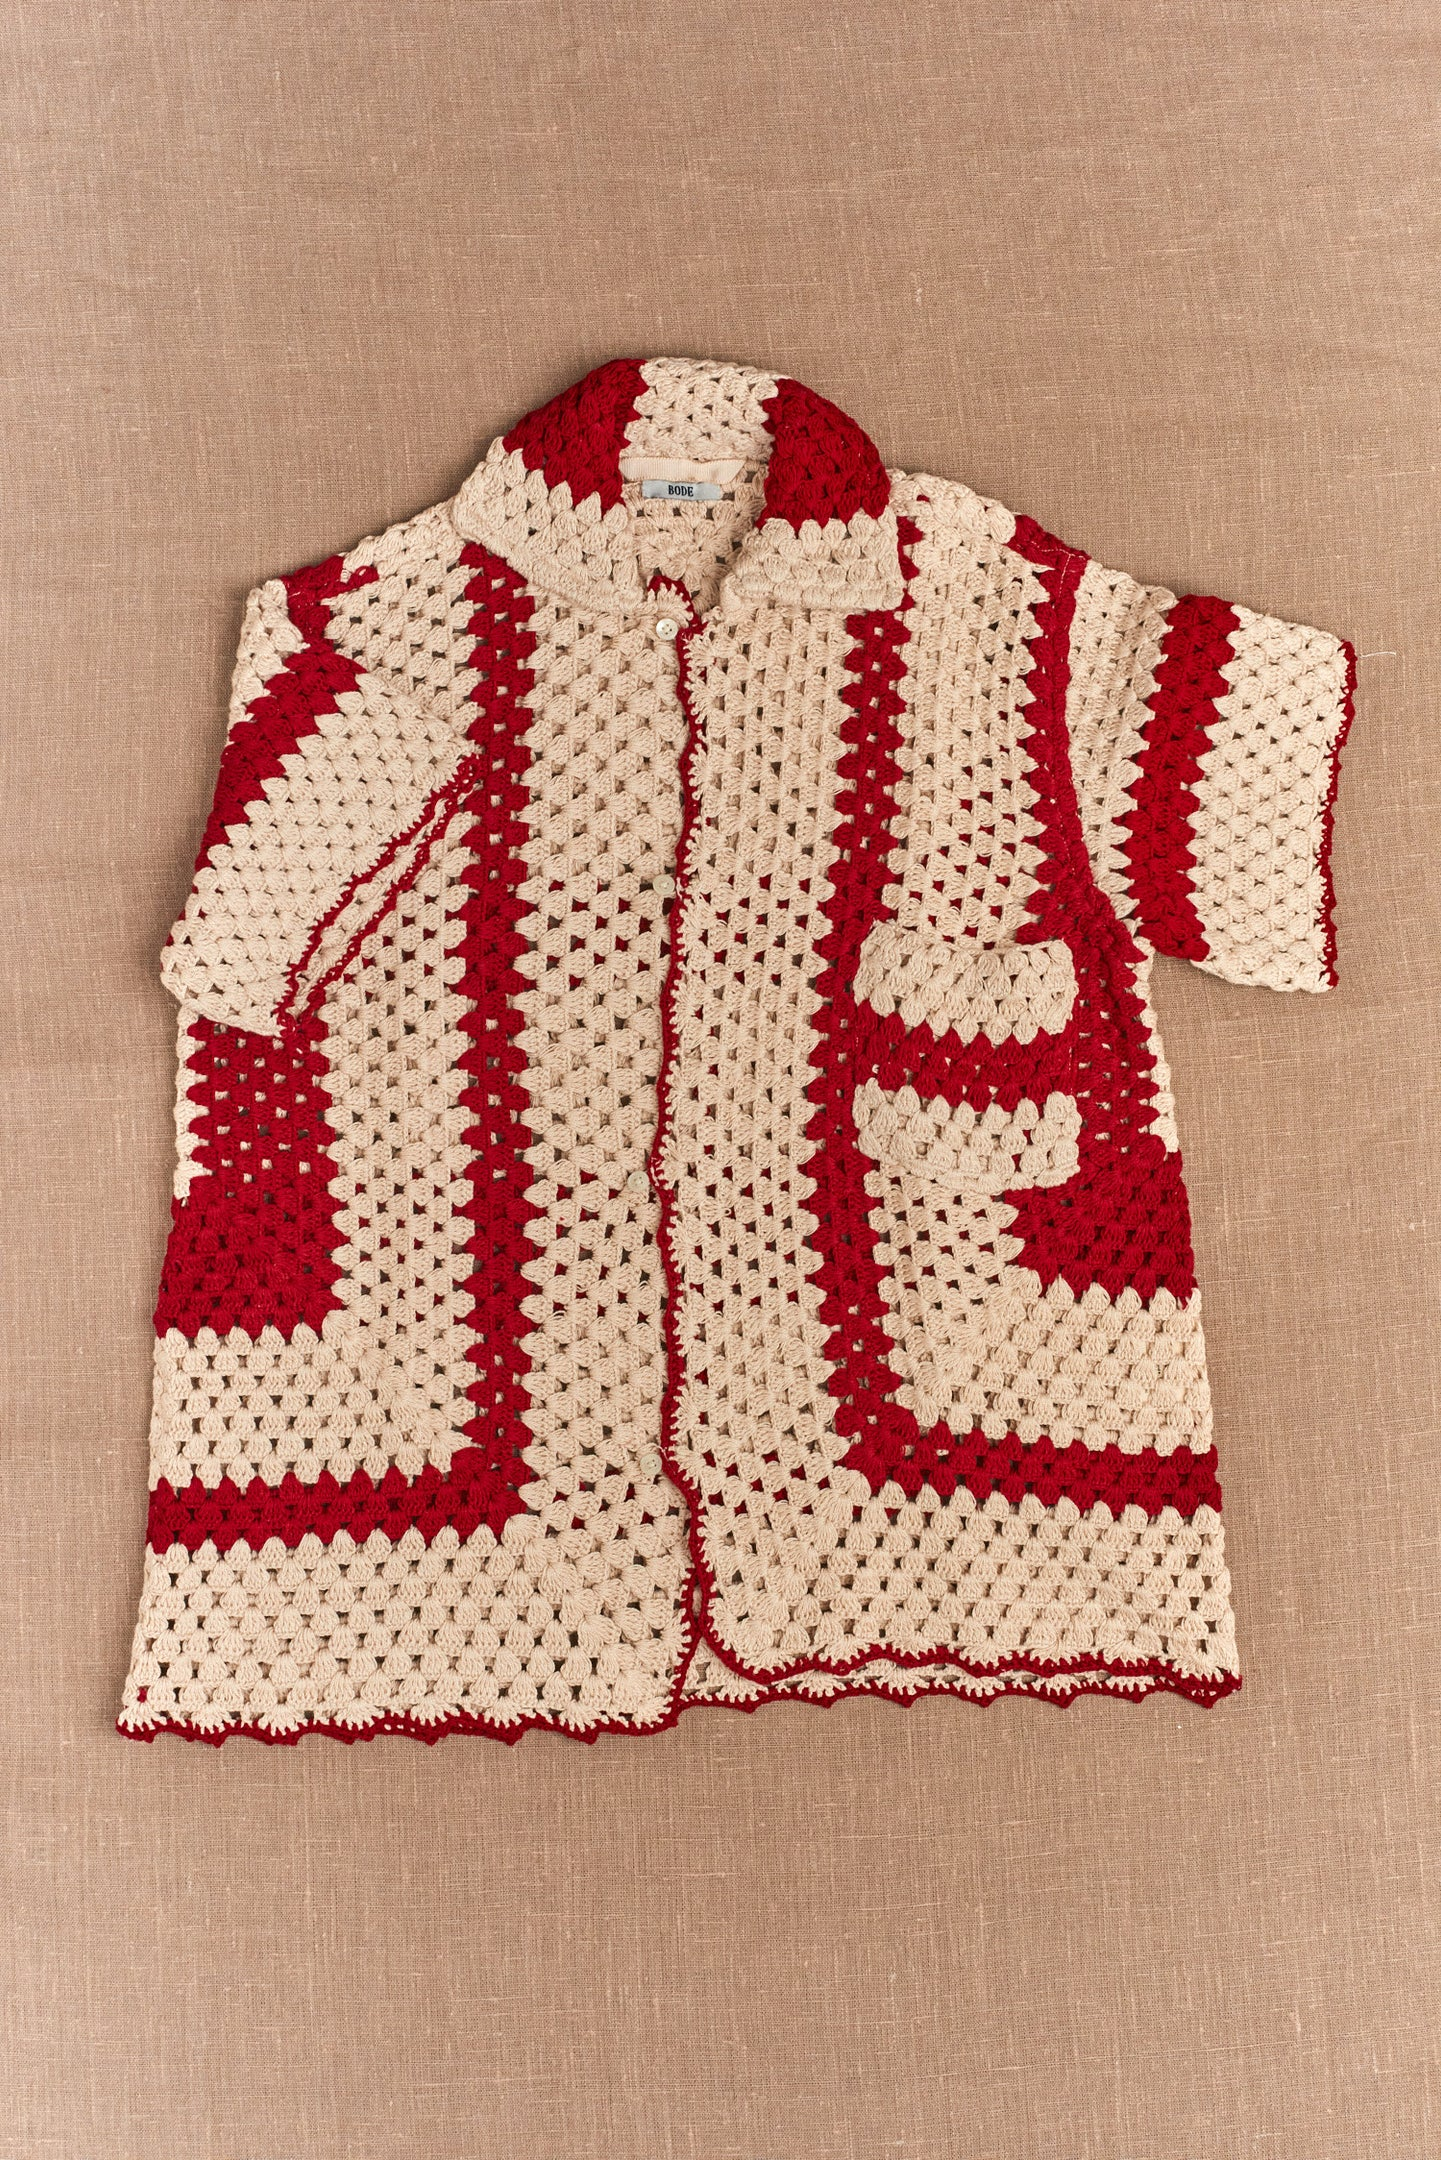 Bode, Crochet Big Top Shirt